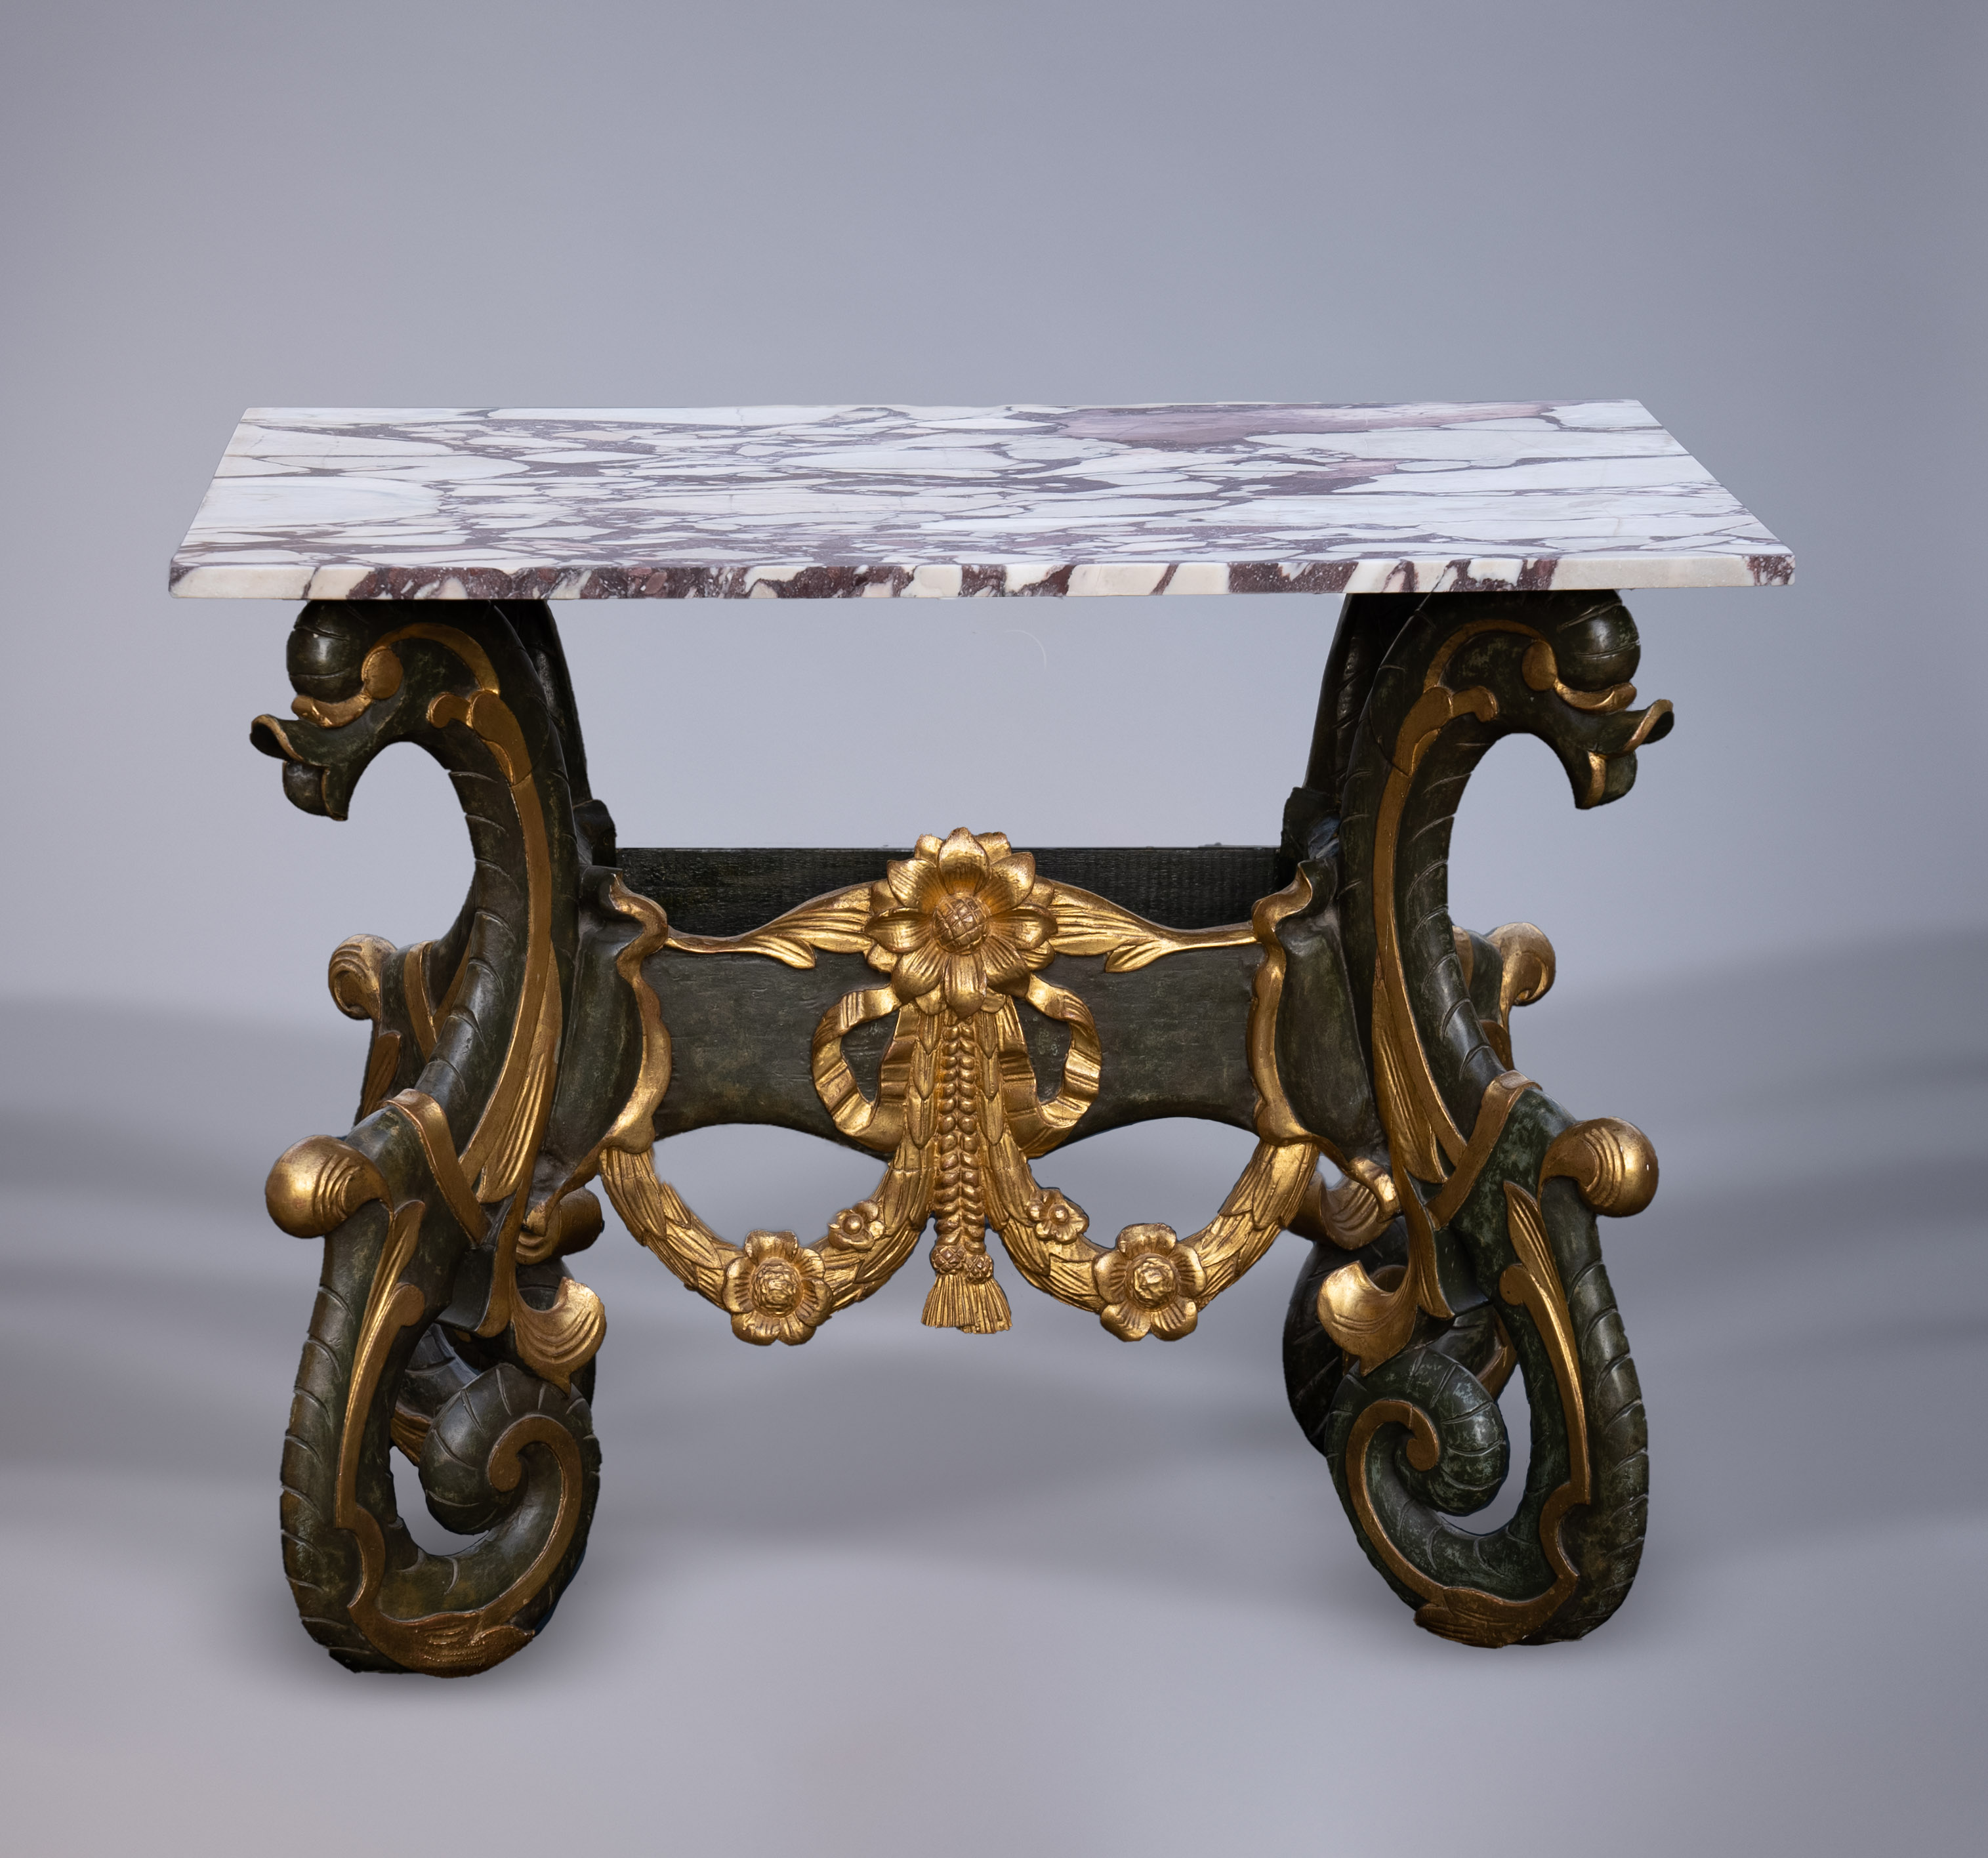 17th Century Dutch Giltwood Kwabtafel